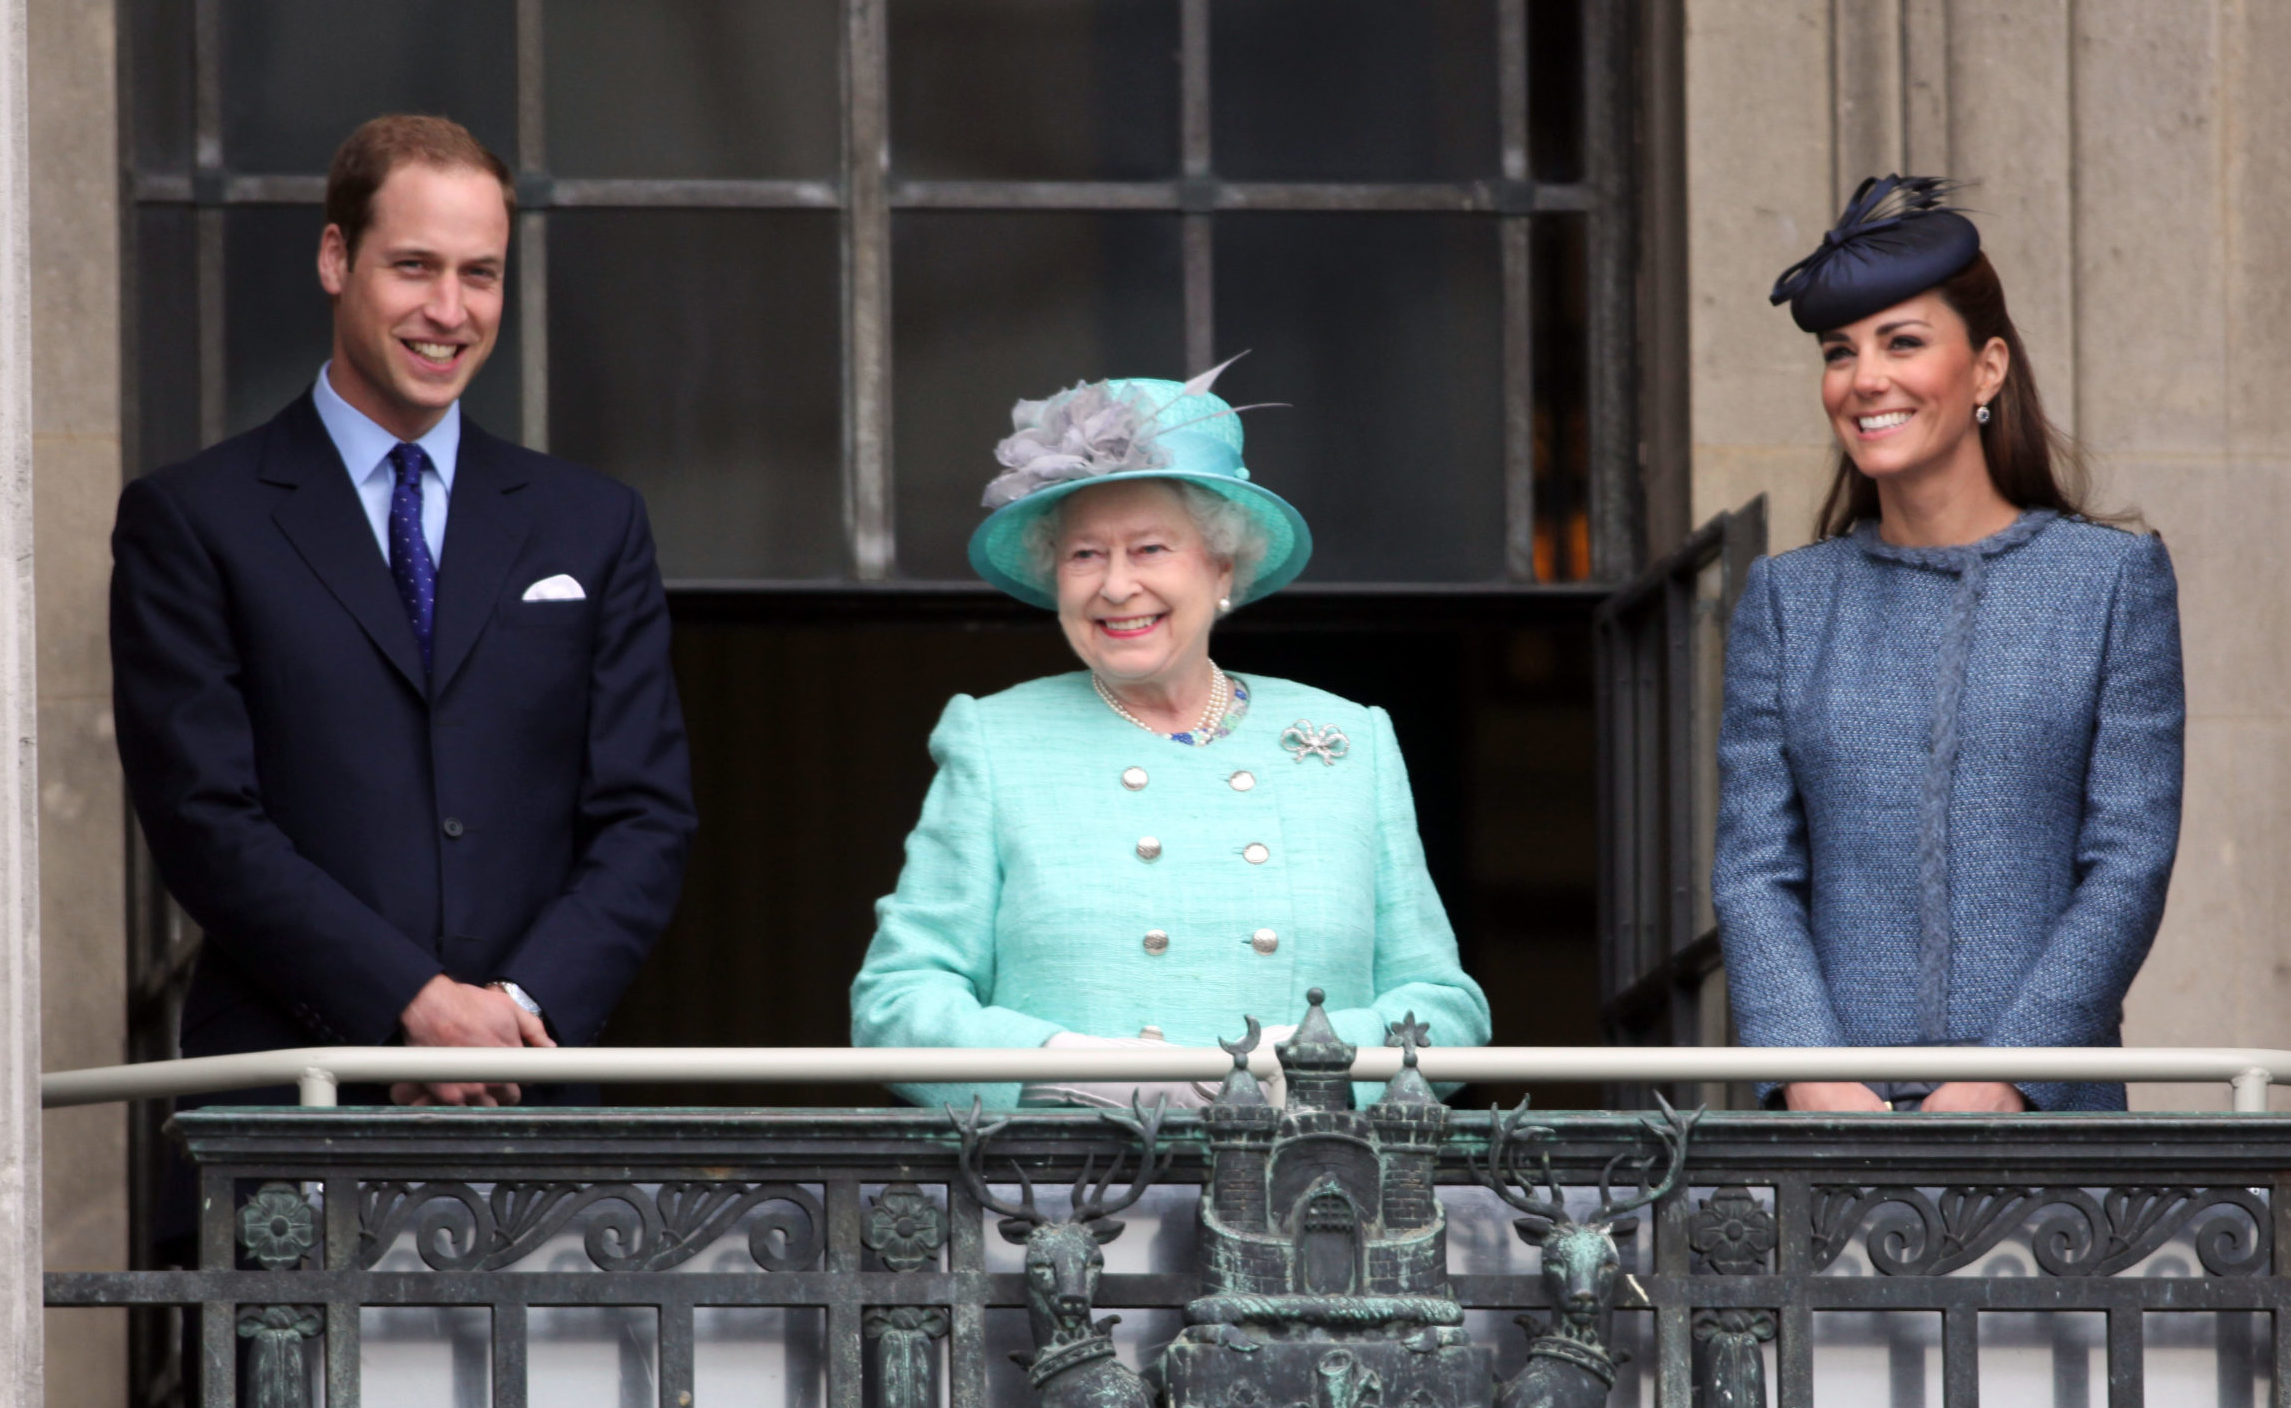 William and Kate send sweet message to the Queen to celebrate her 94th birthday